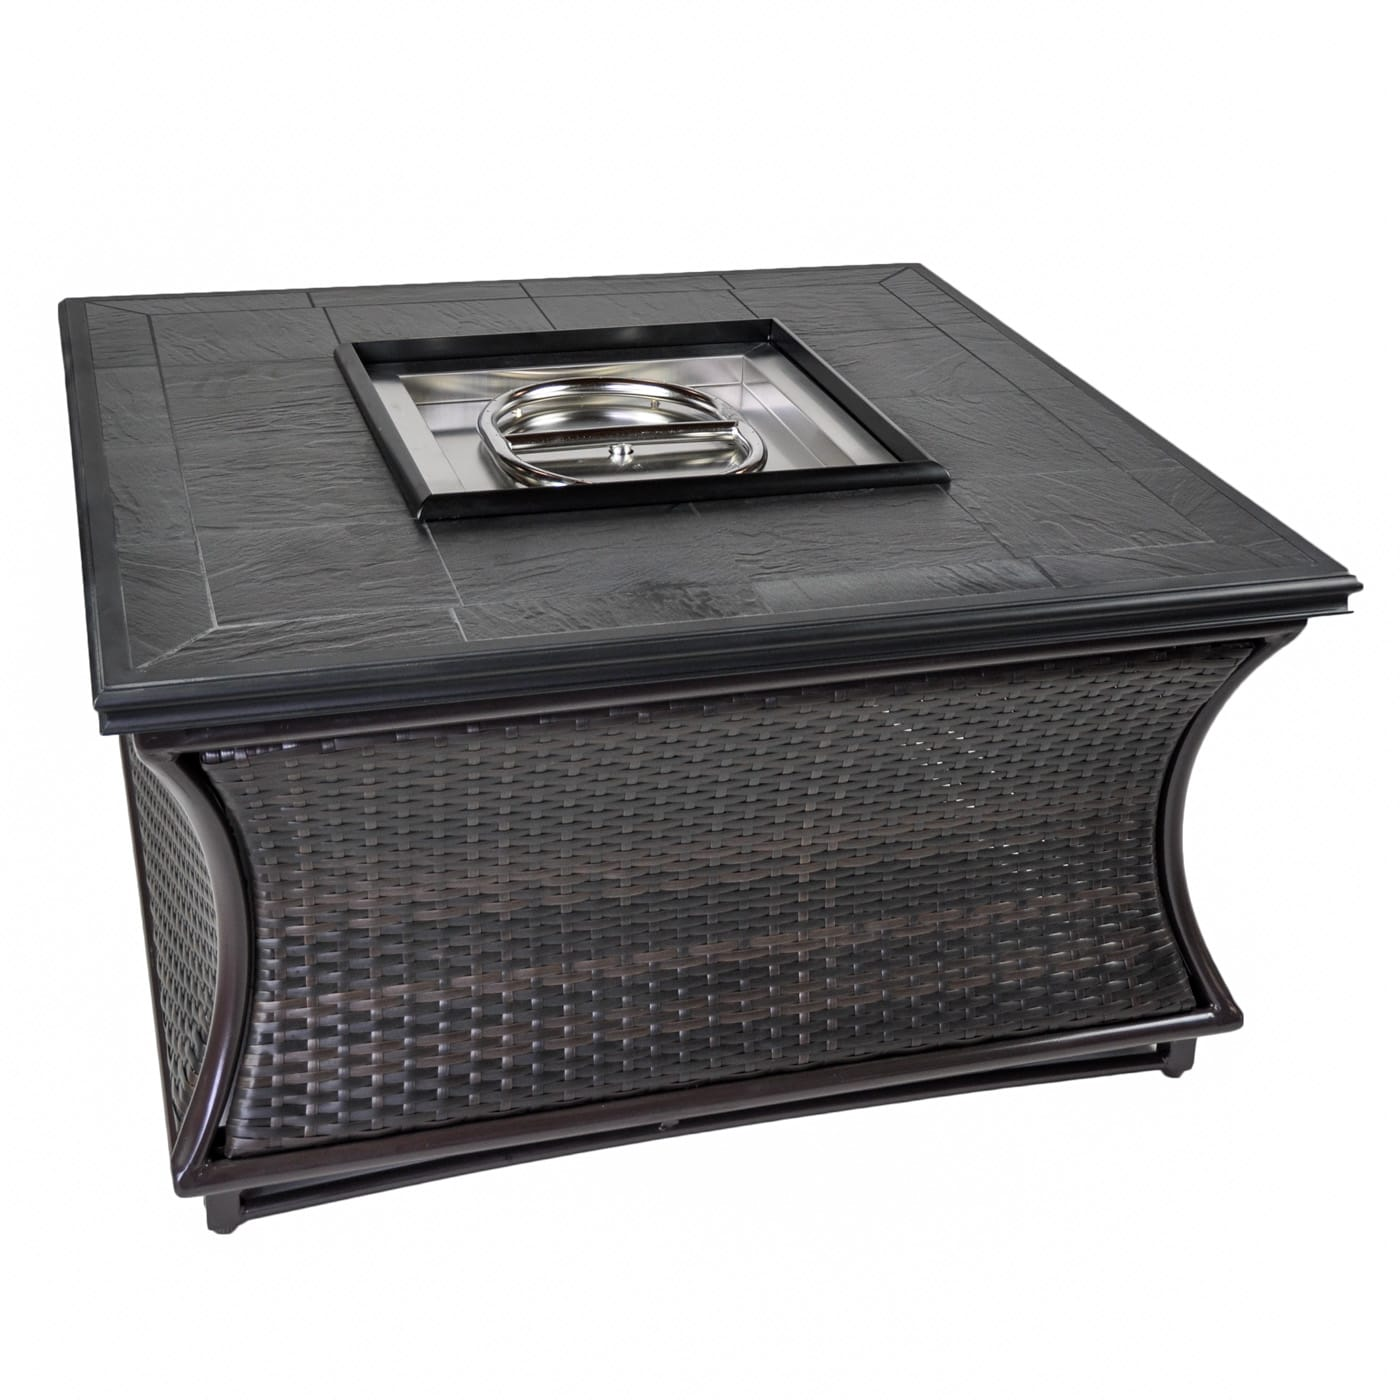 Tretco Spring Hill Wicker 44 inch Fire Pit Table - FP-W-SPR-44